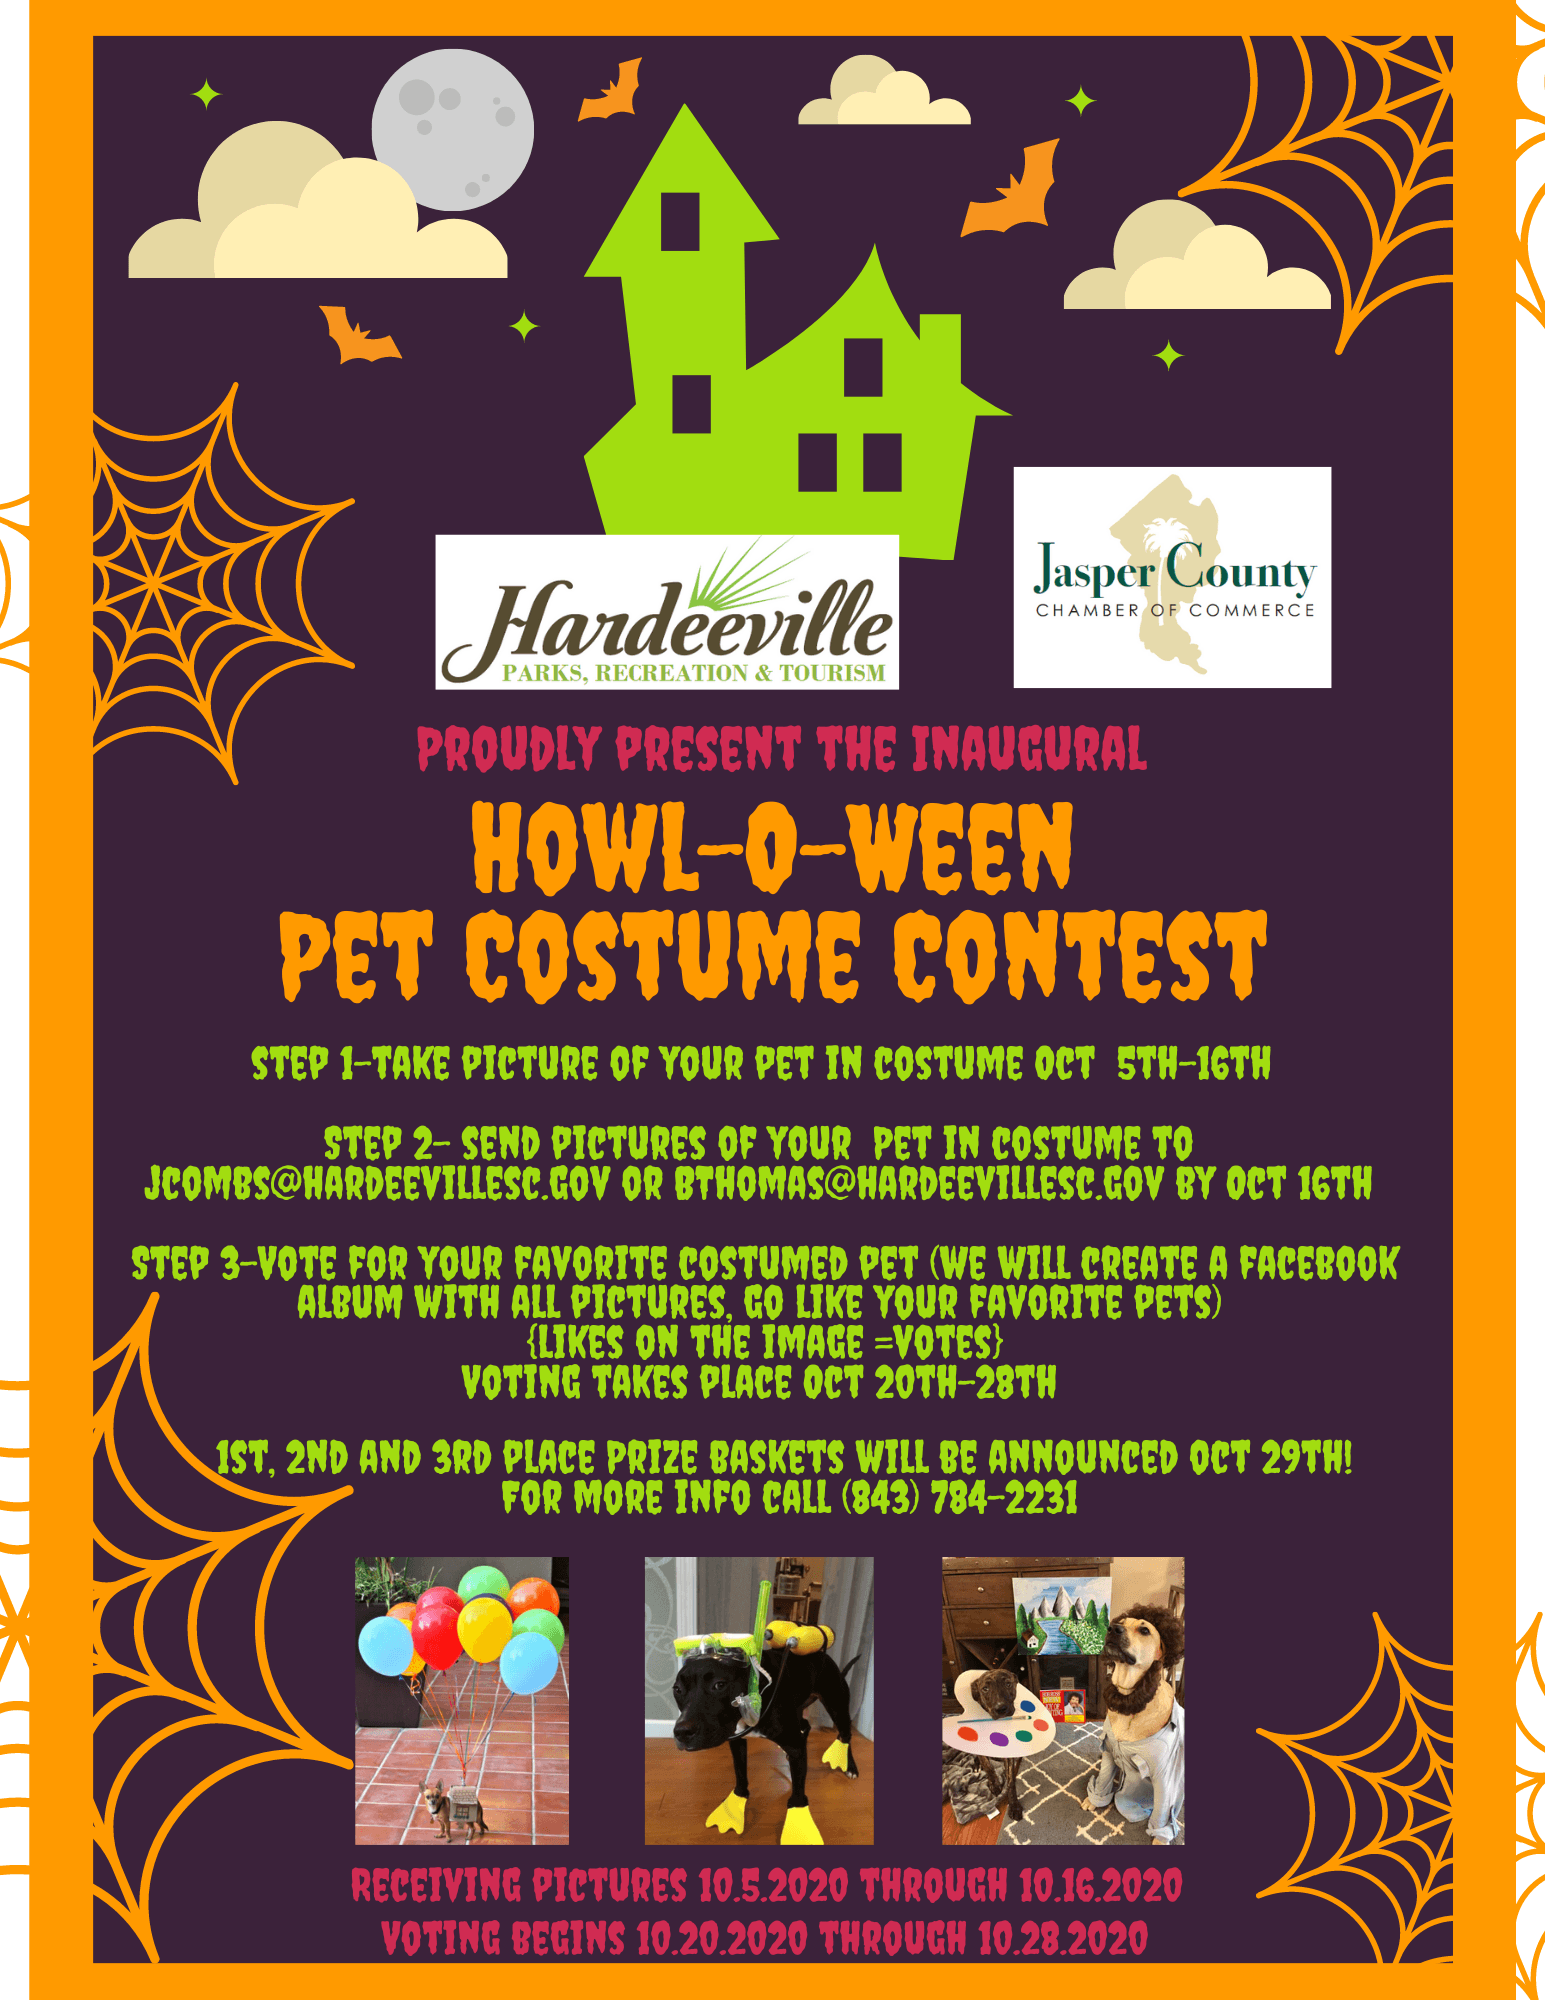 Howl-o-ween Pet Costume Contest Flyer and how to enter the contest.